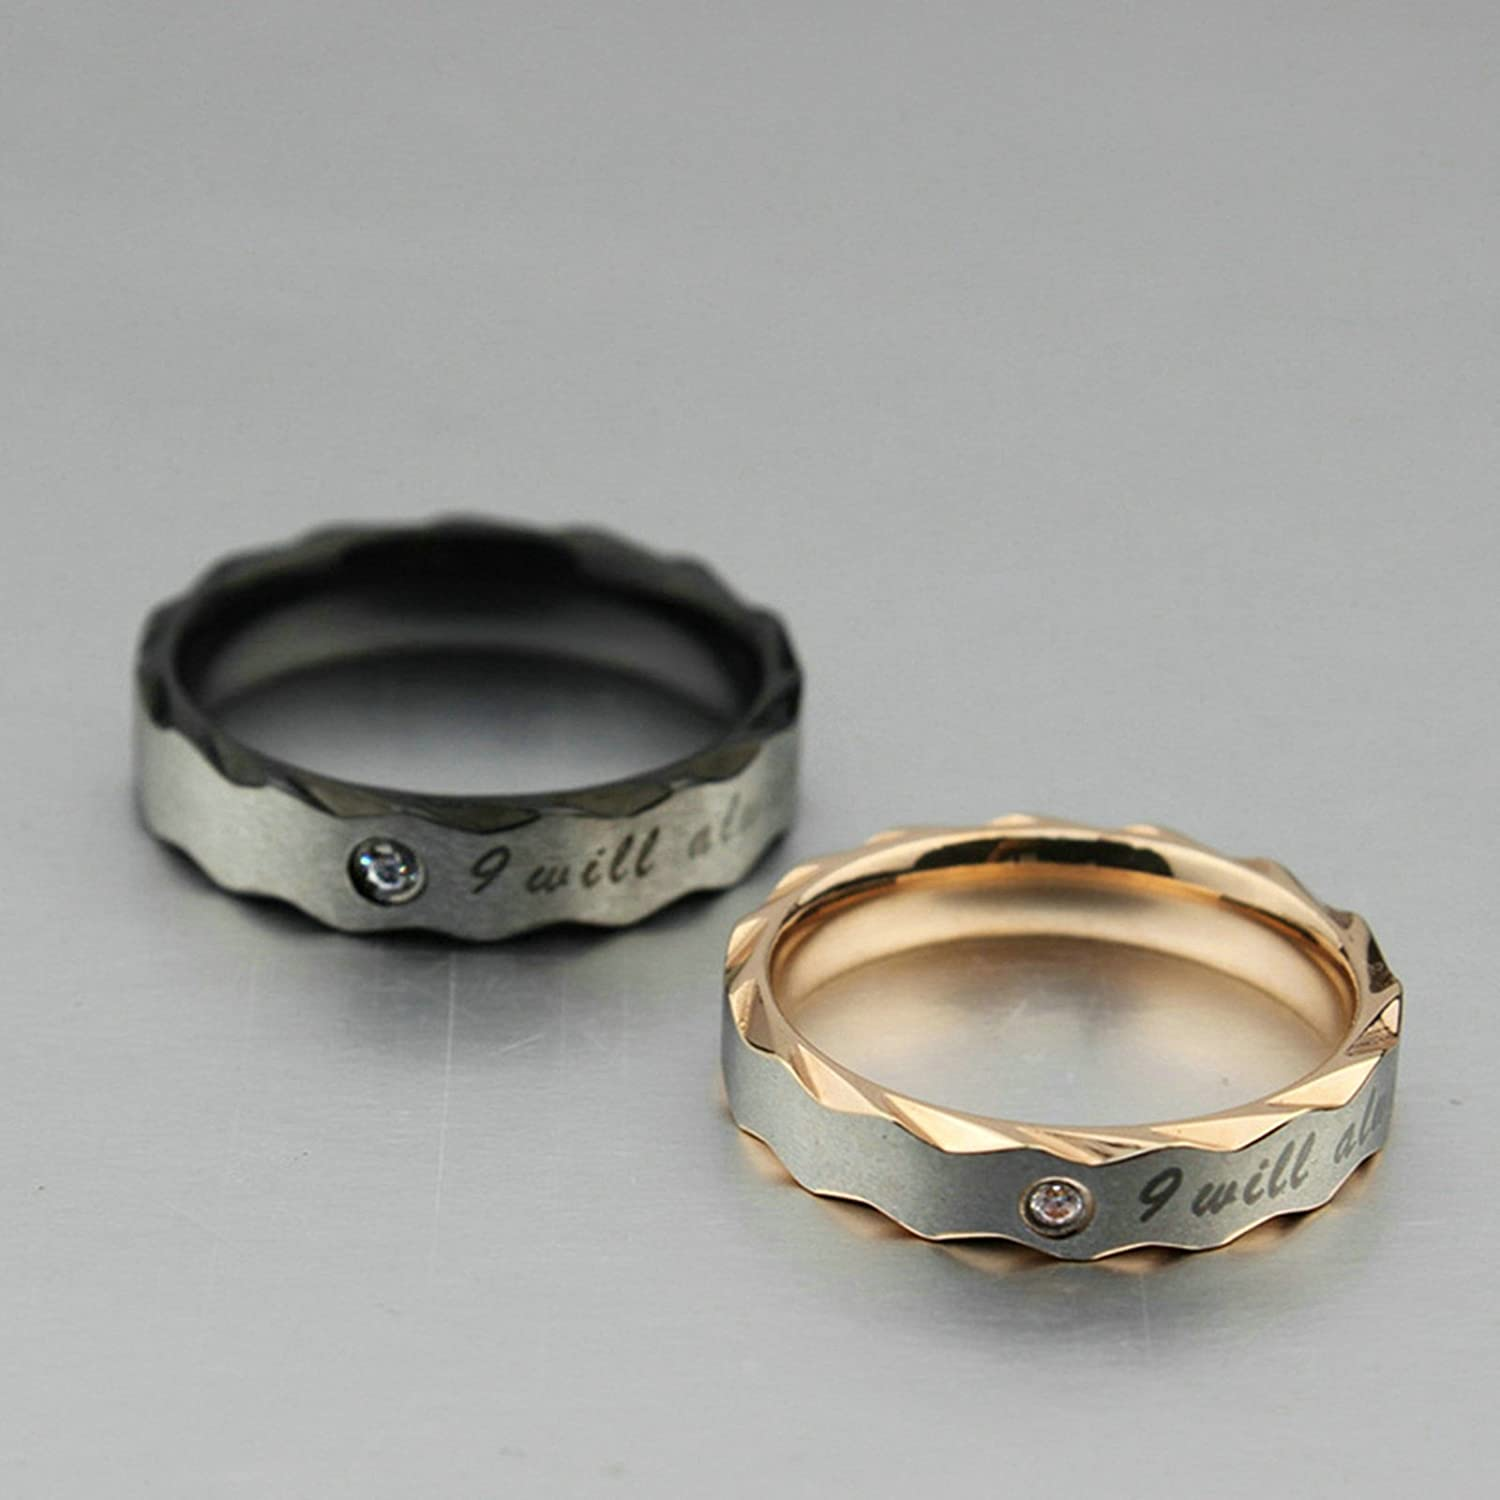 Aooaz Couples Rings Rings for Women Men with Engraving I Will Be Always with You Women Rings